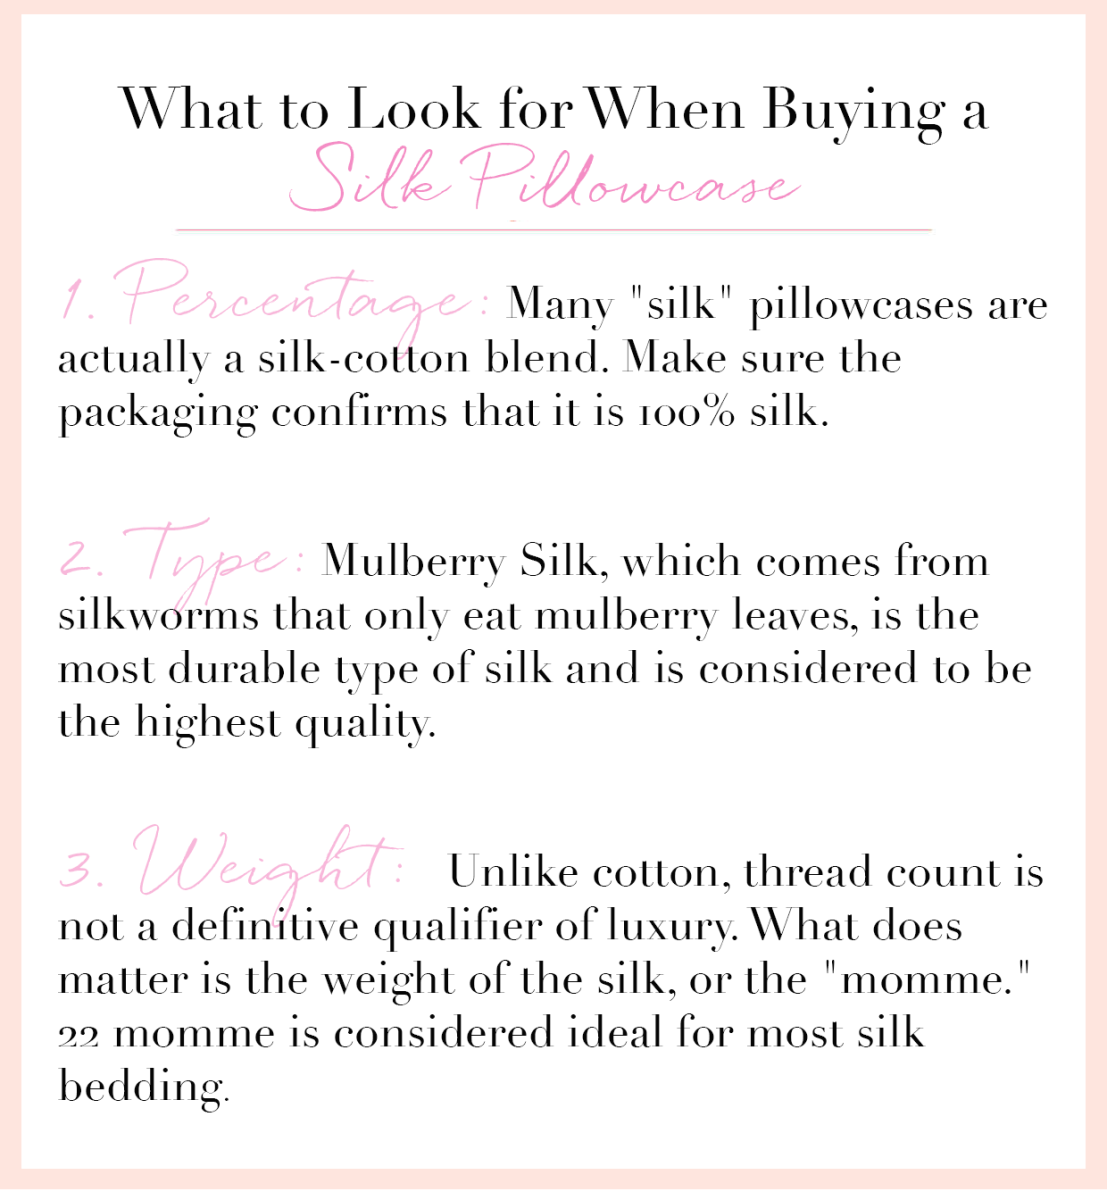 What to Look for When Buying a Silk Pillowcase NEWNEW.png